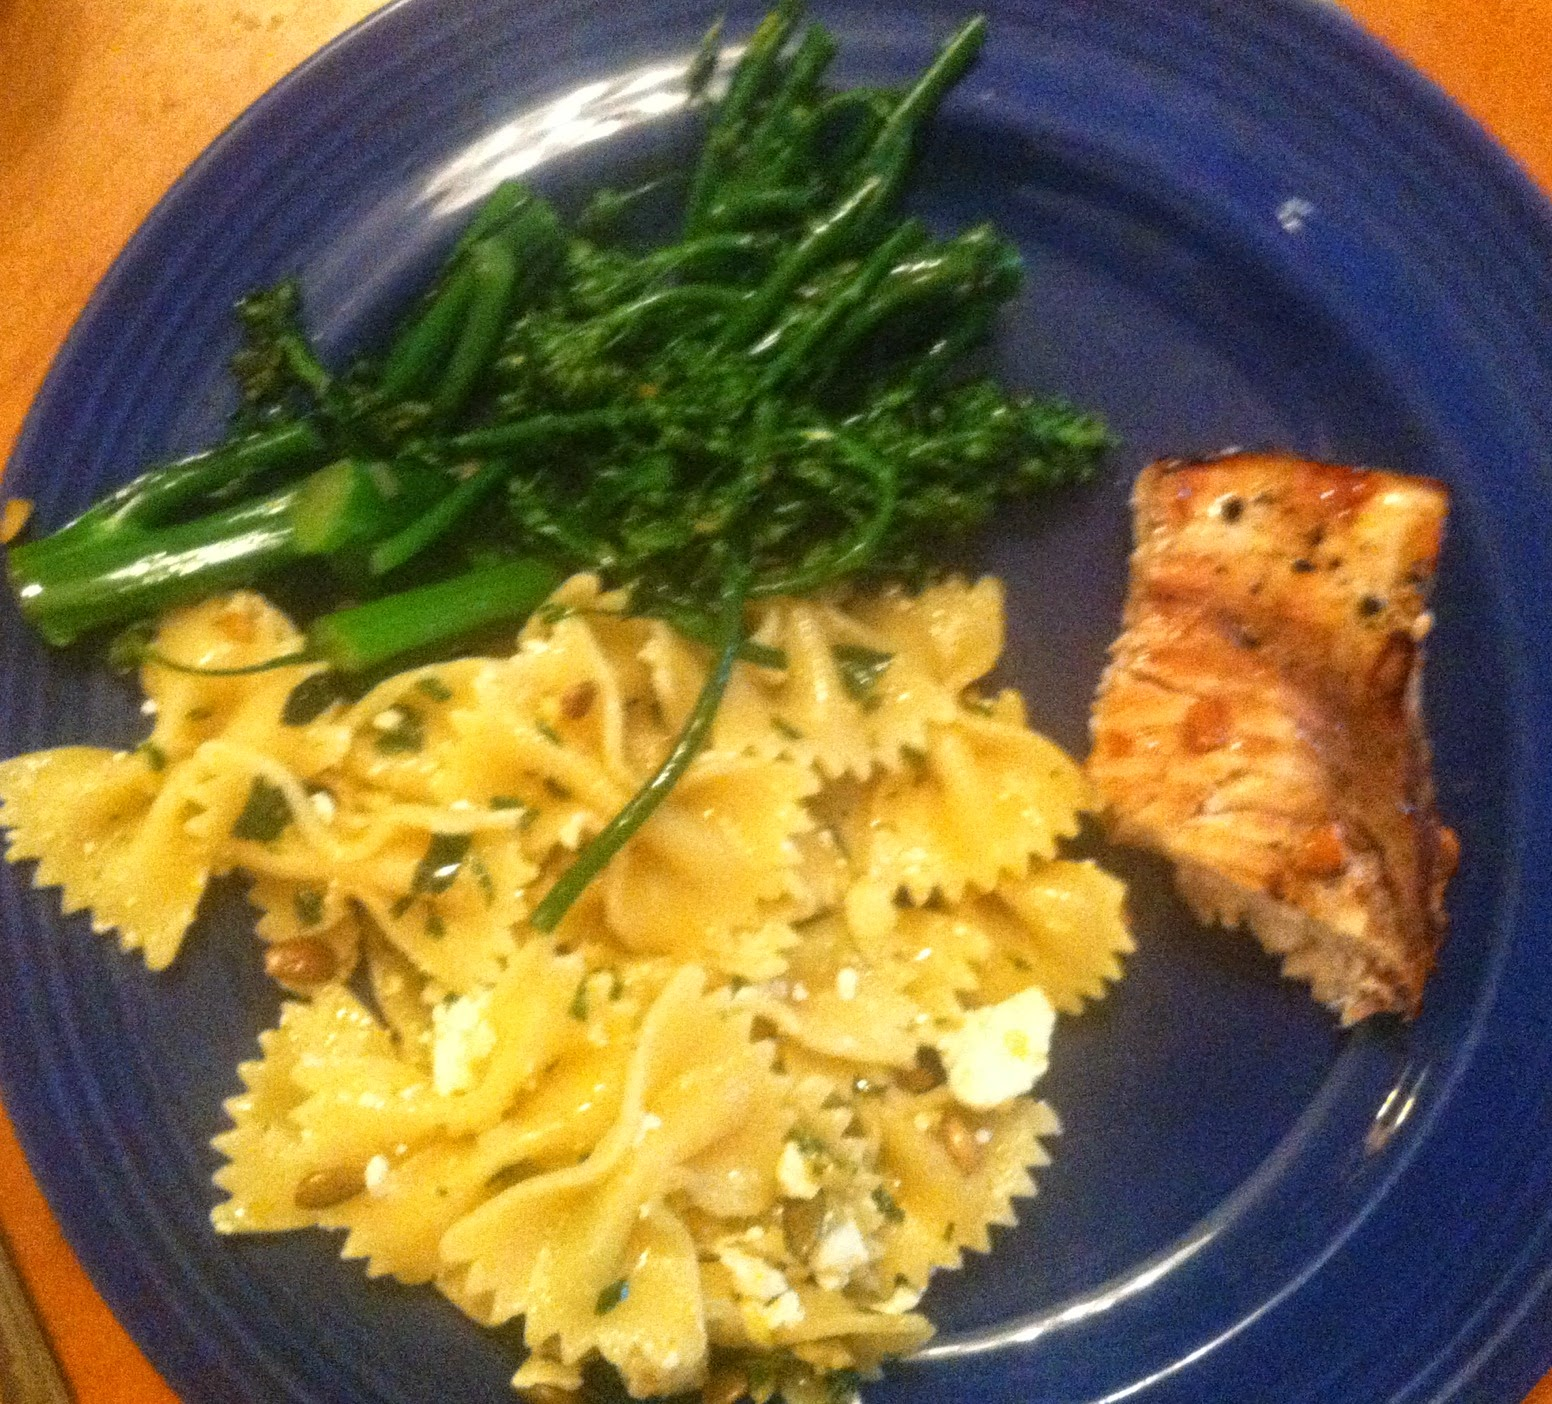 grilled swordfish with bowtie pasta and baby broccoli. Healthy & tasty!